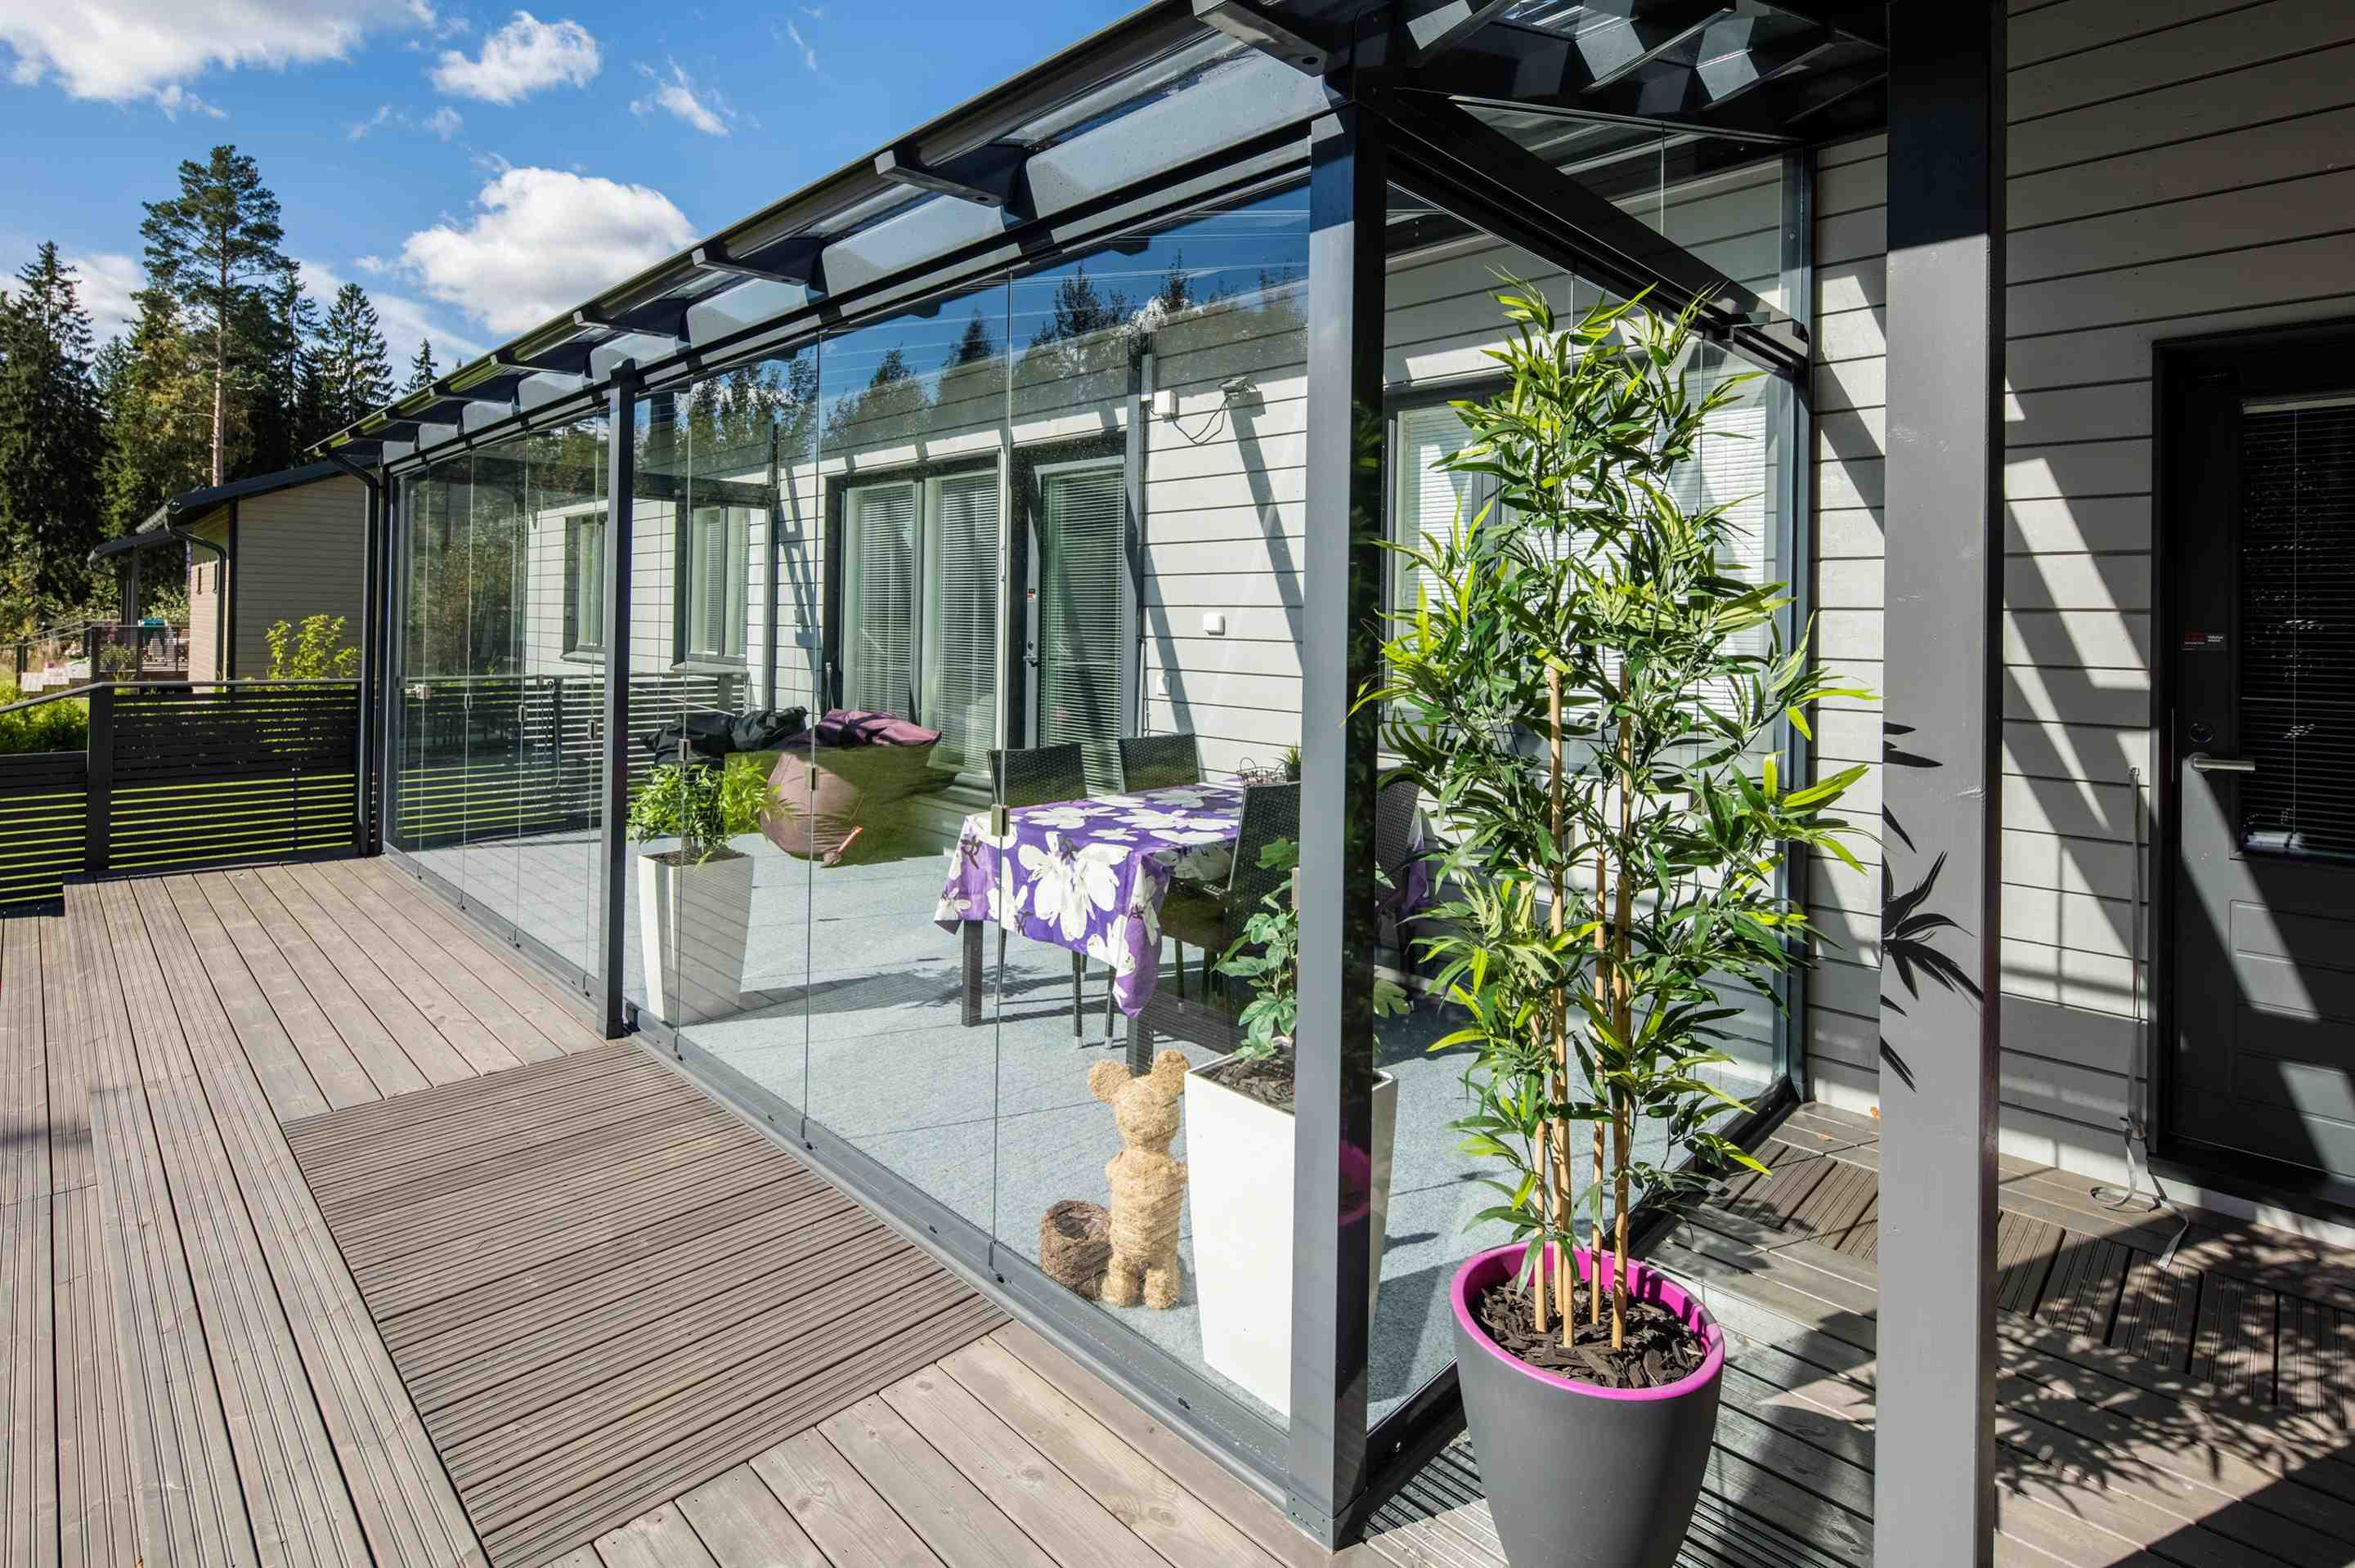 sunroom, sunroom in canada, sunroom in hamilton, sunroom in vancouver, sunroom in toronto, lumon canada, retractable glass walls, frameless glass walls